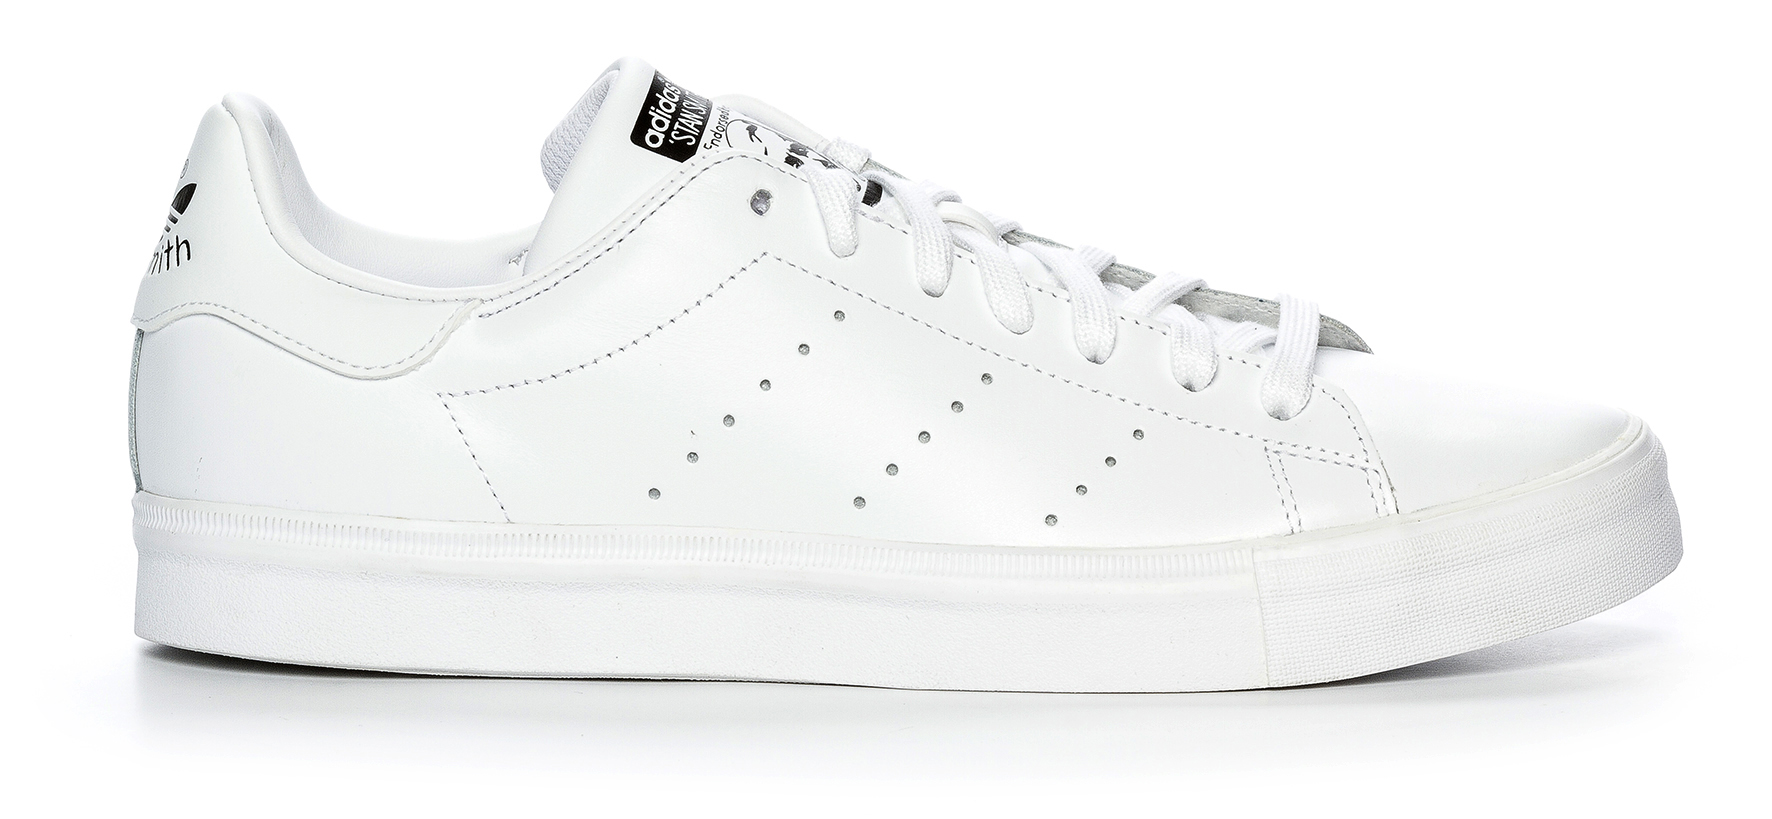 cheaper bbbf0 ef409 Adidas Stan Smith Vulc - Hvit 294402 feetfirst.no